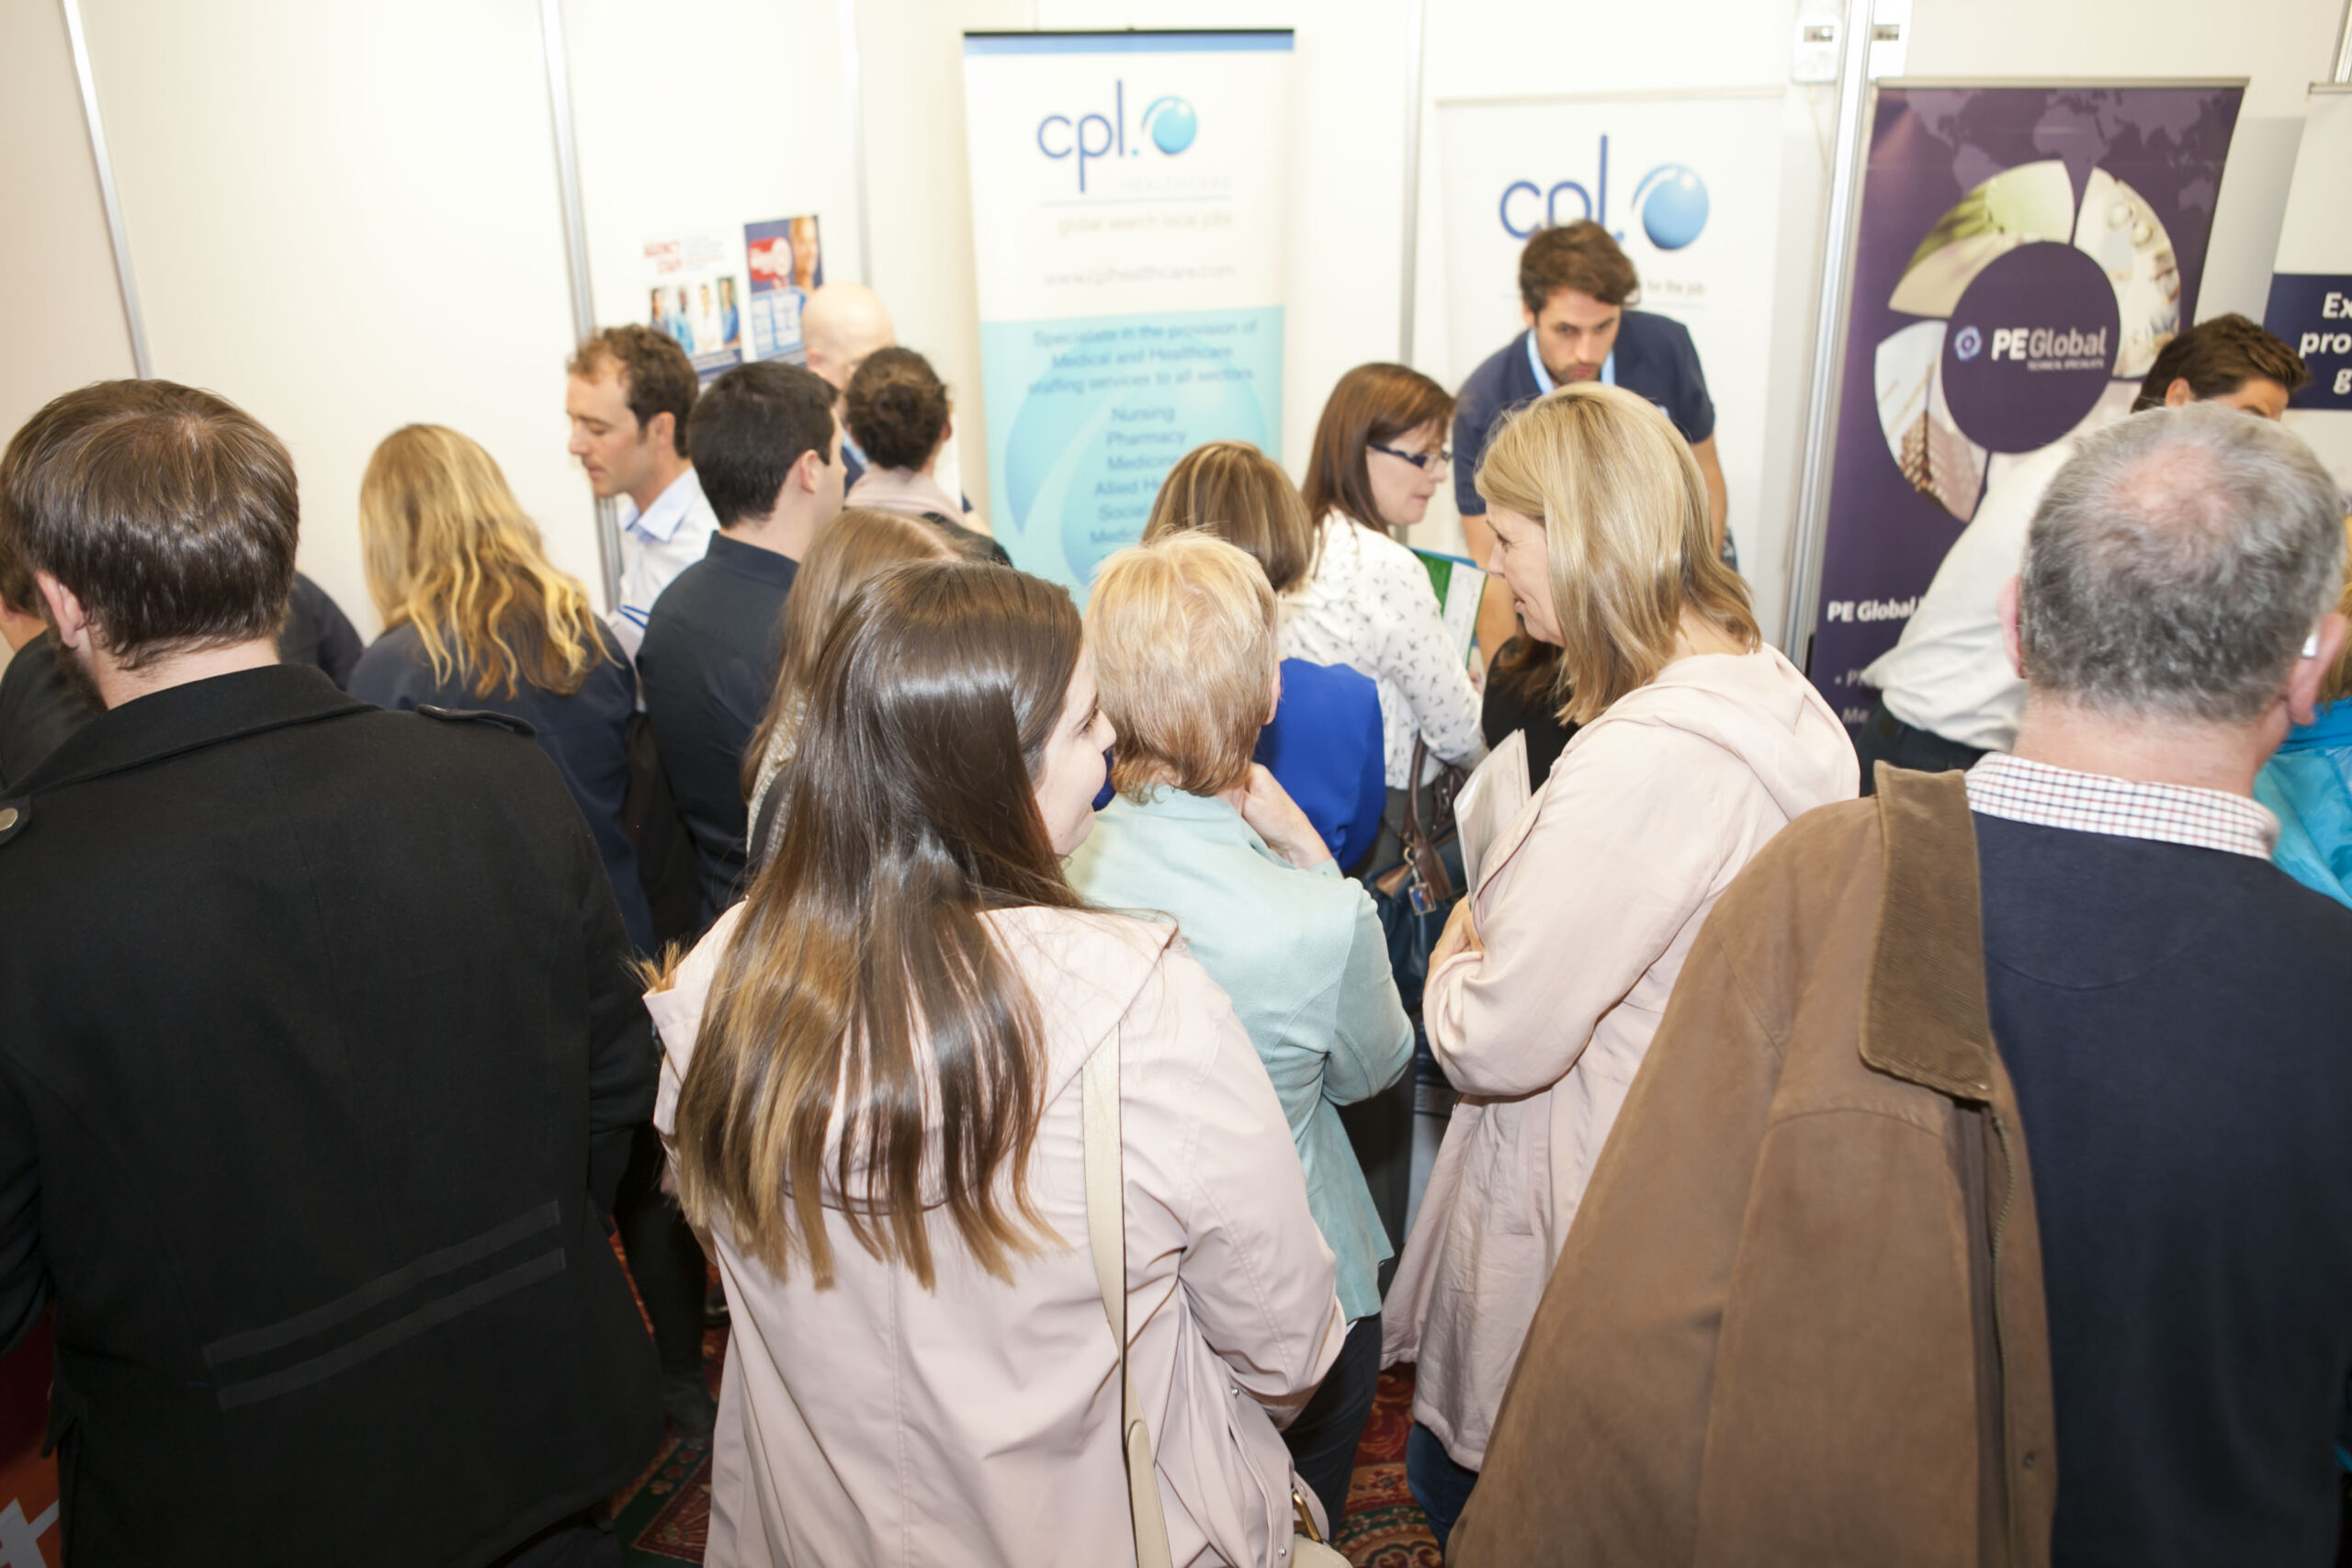 Photo roundup: Jobs Expo Galway was a very busy day!